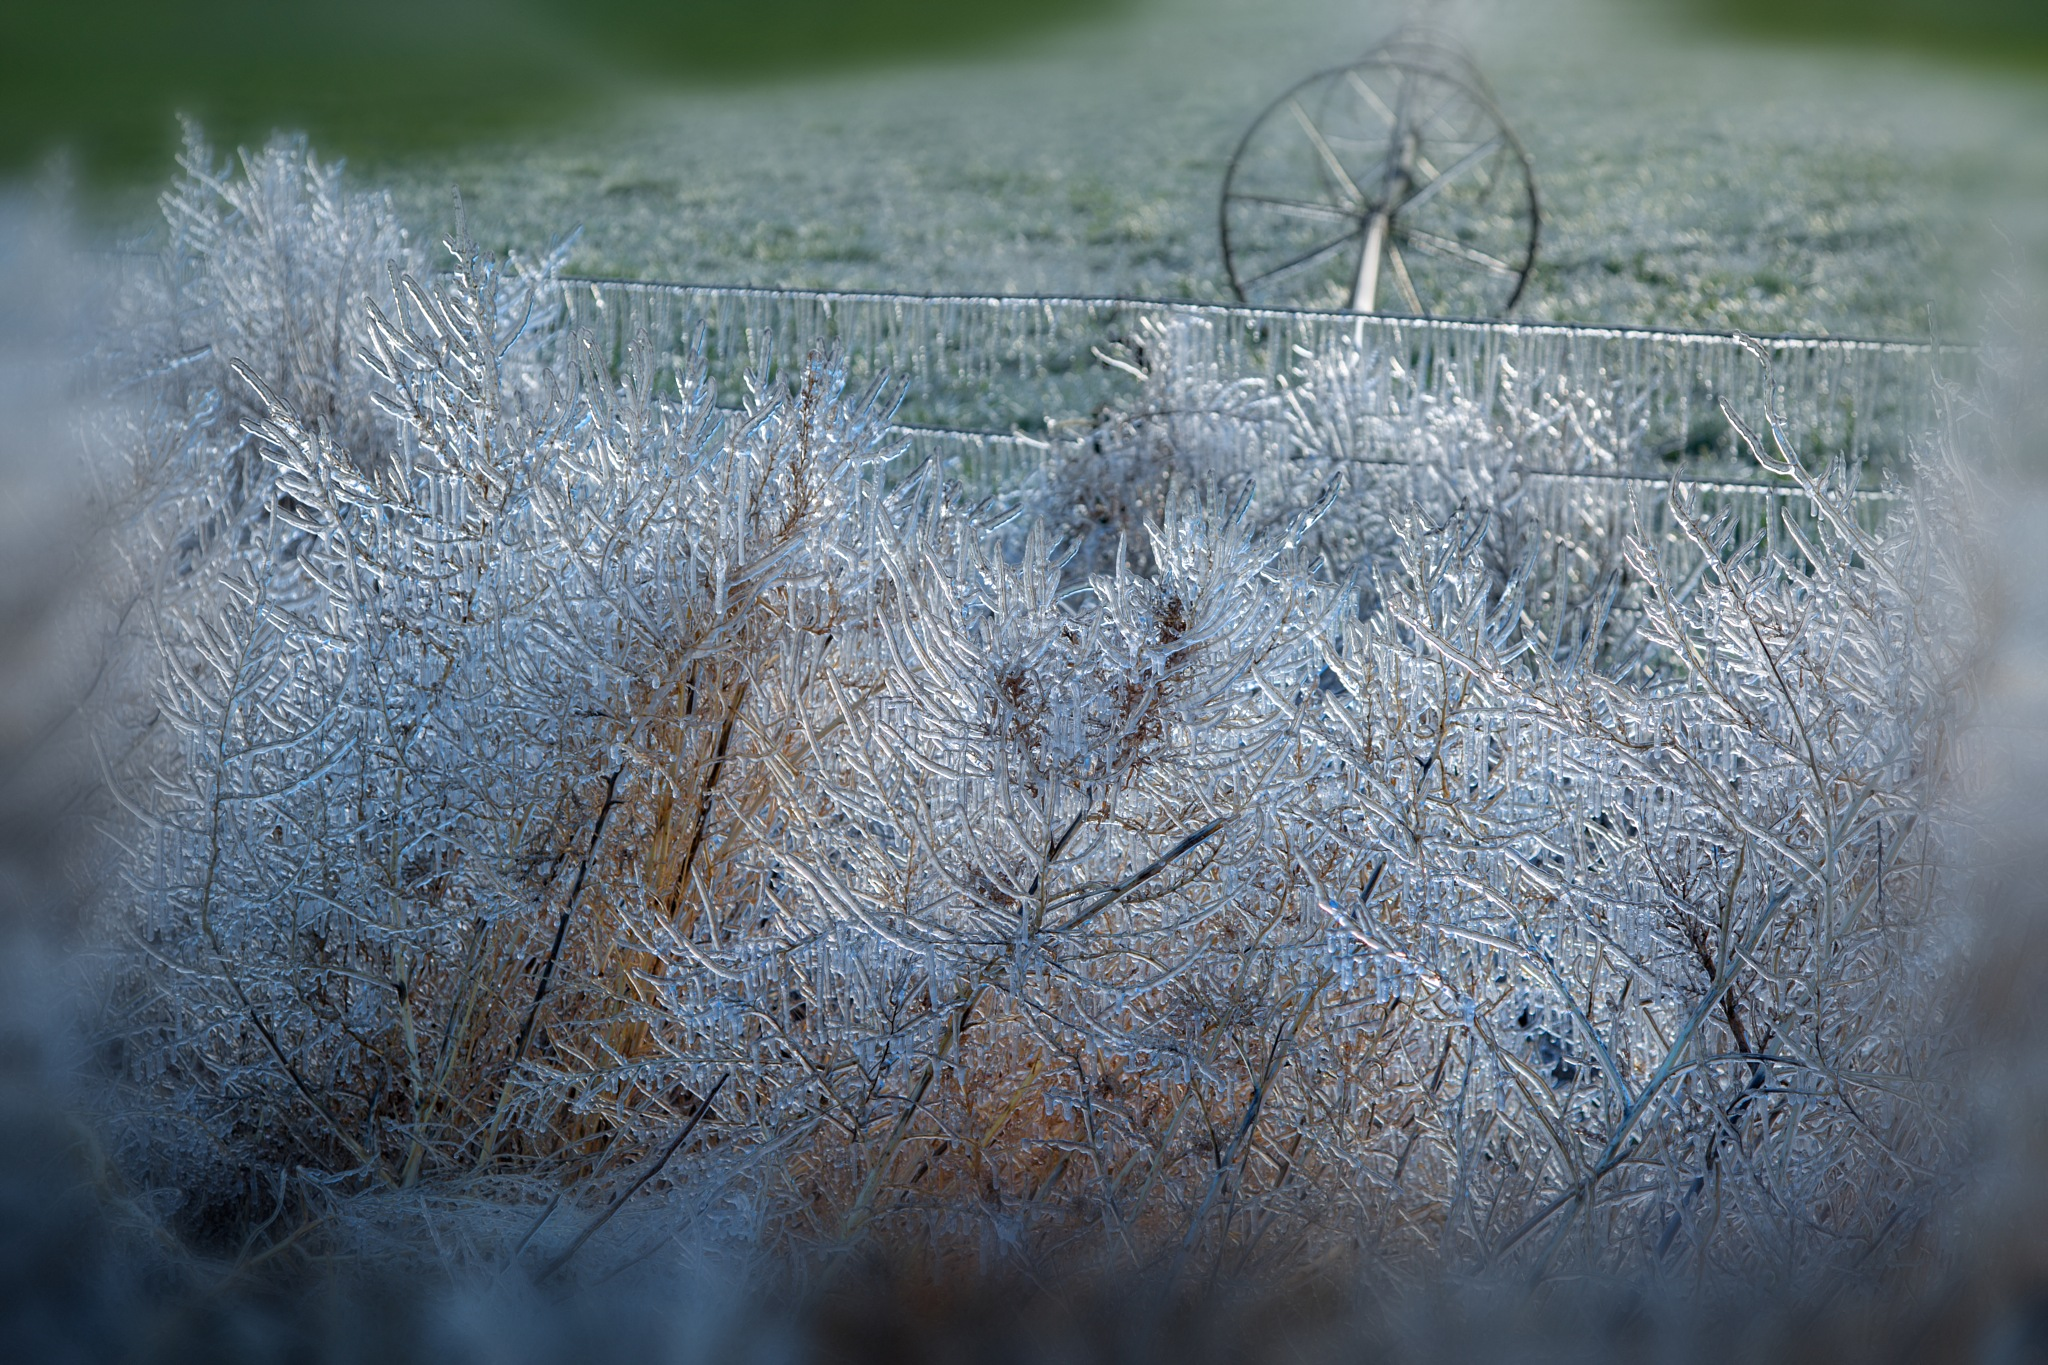 A frosty morning by Dianachang